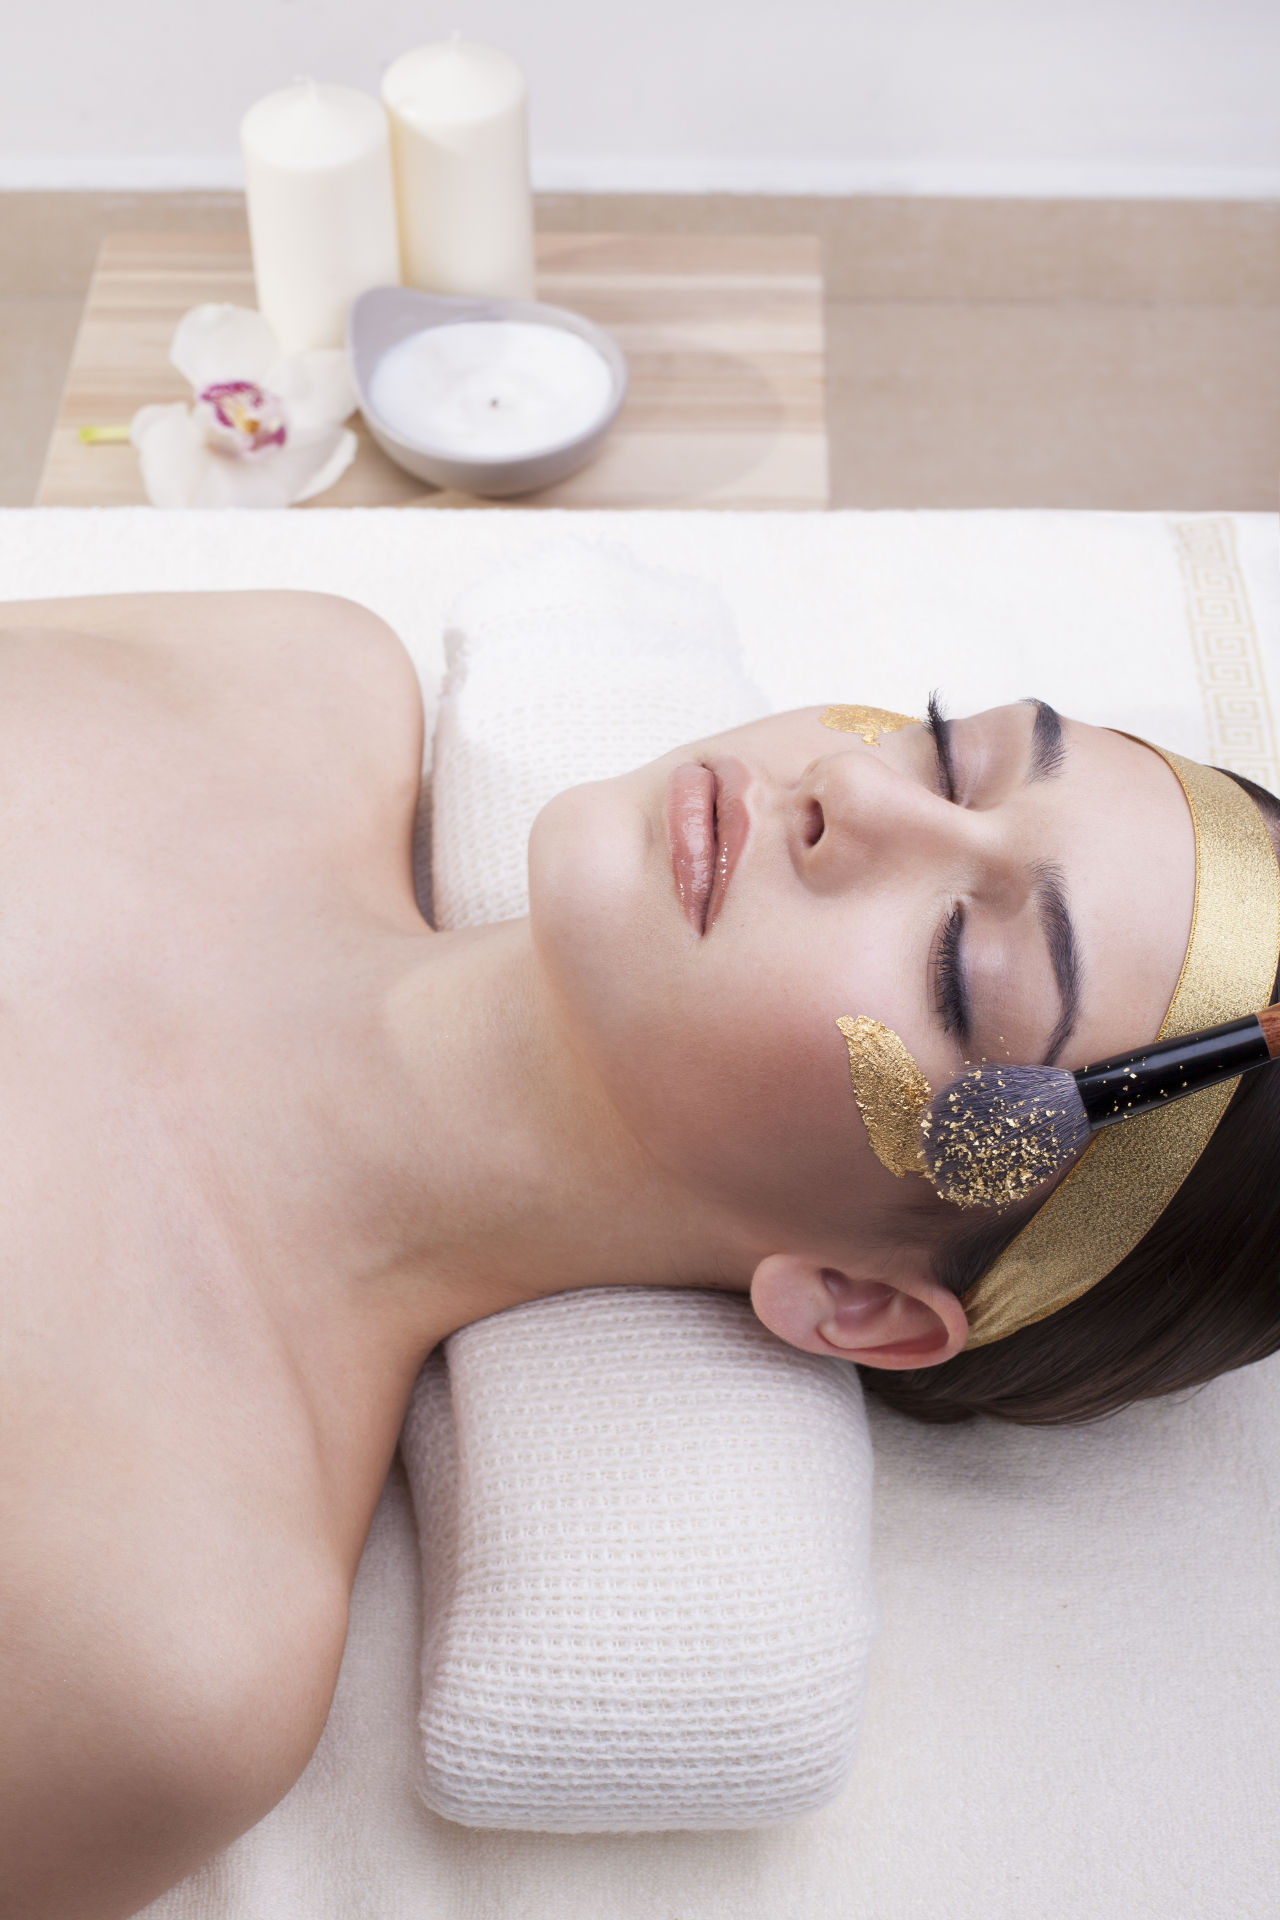 Woman enjoying gold cosmetics and skin care.